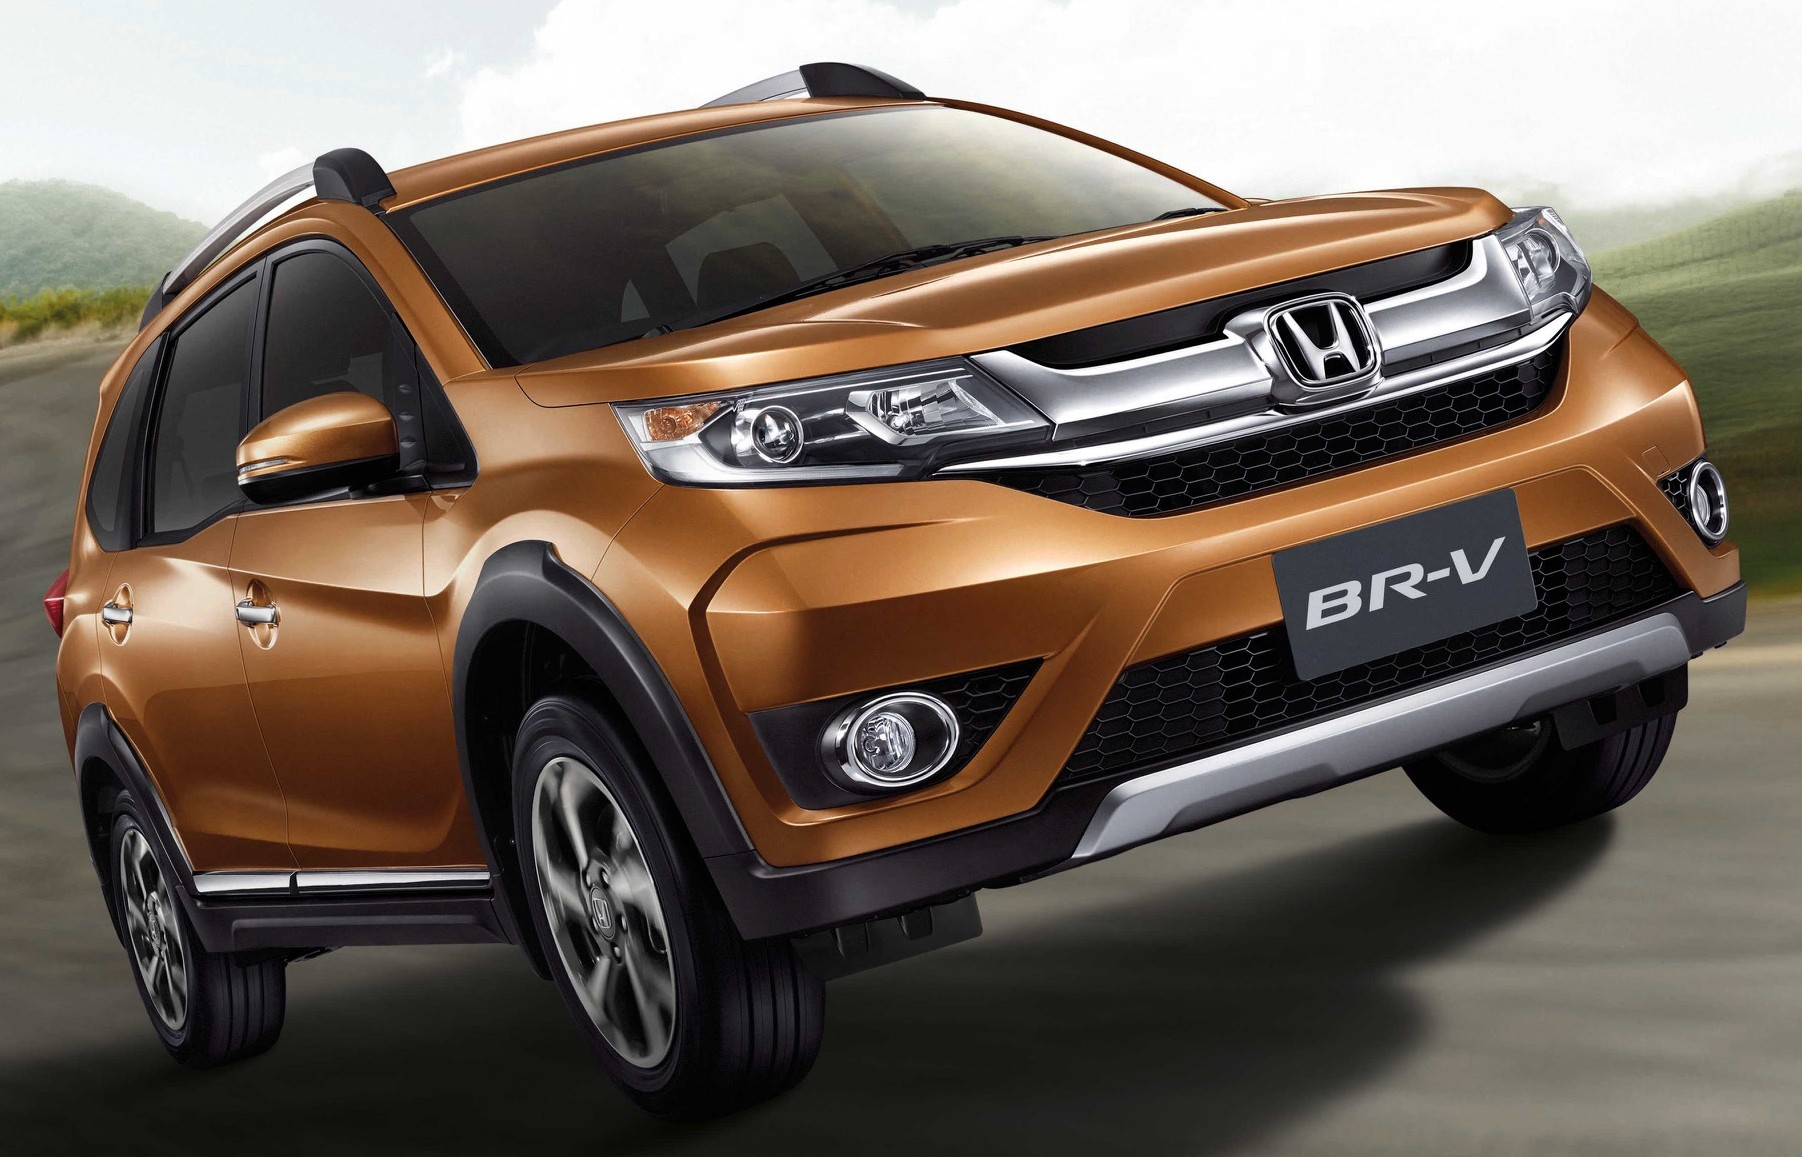 Honda BR-V goes on sale in Thailand - five- and seven-seat ...